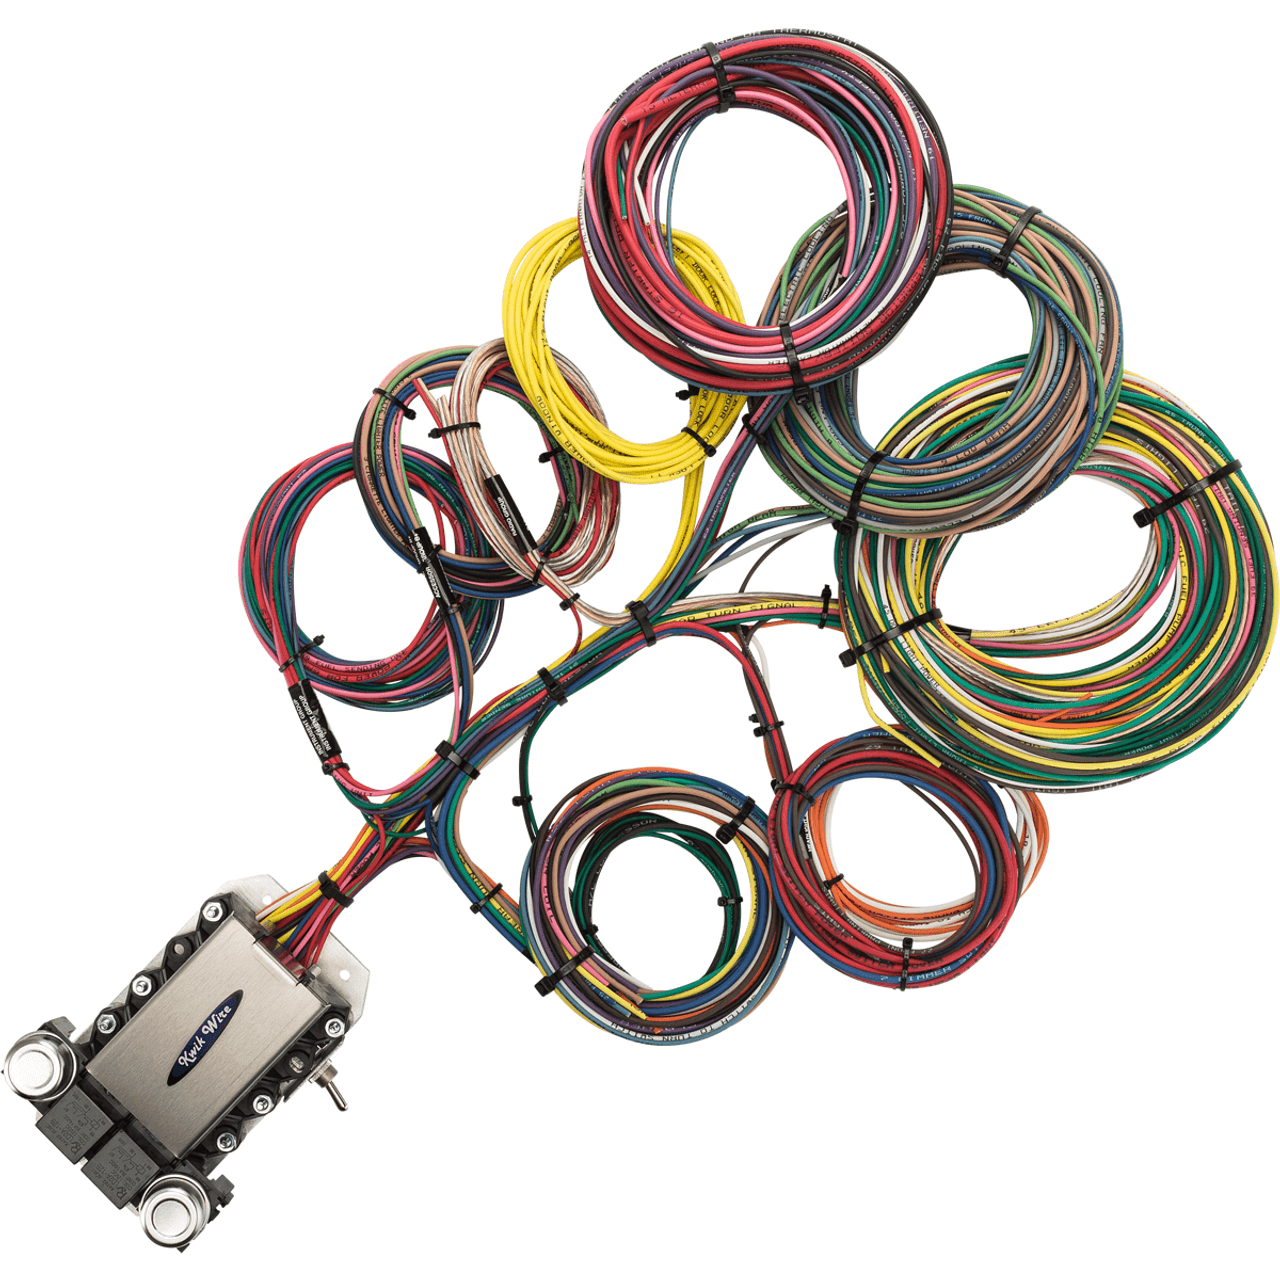 20 circuit wire harness kwikwire com electrify your ride rh kwikwire com 20 circuit wiring harness kit diagram deluxe 20 circuit wiring harness